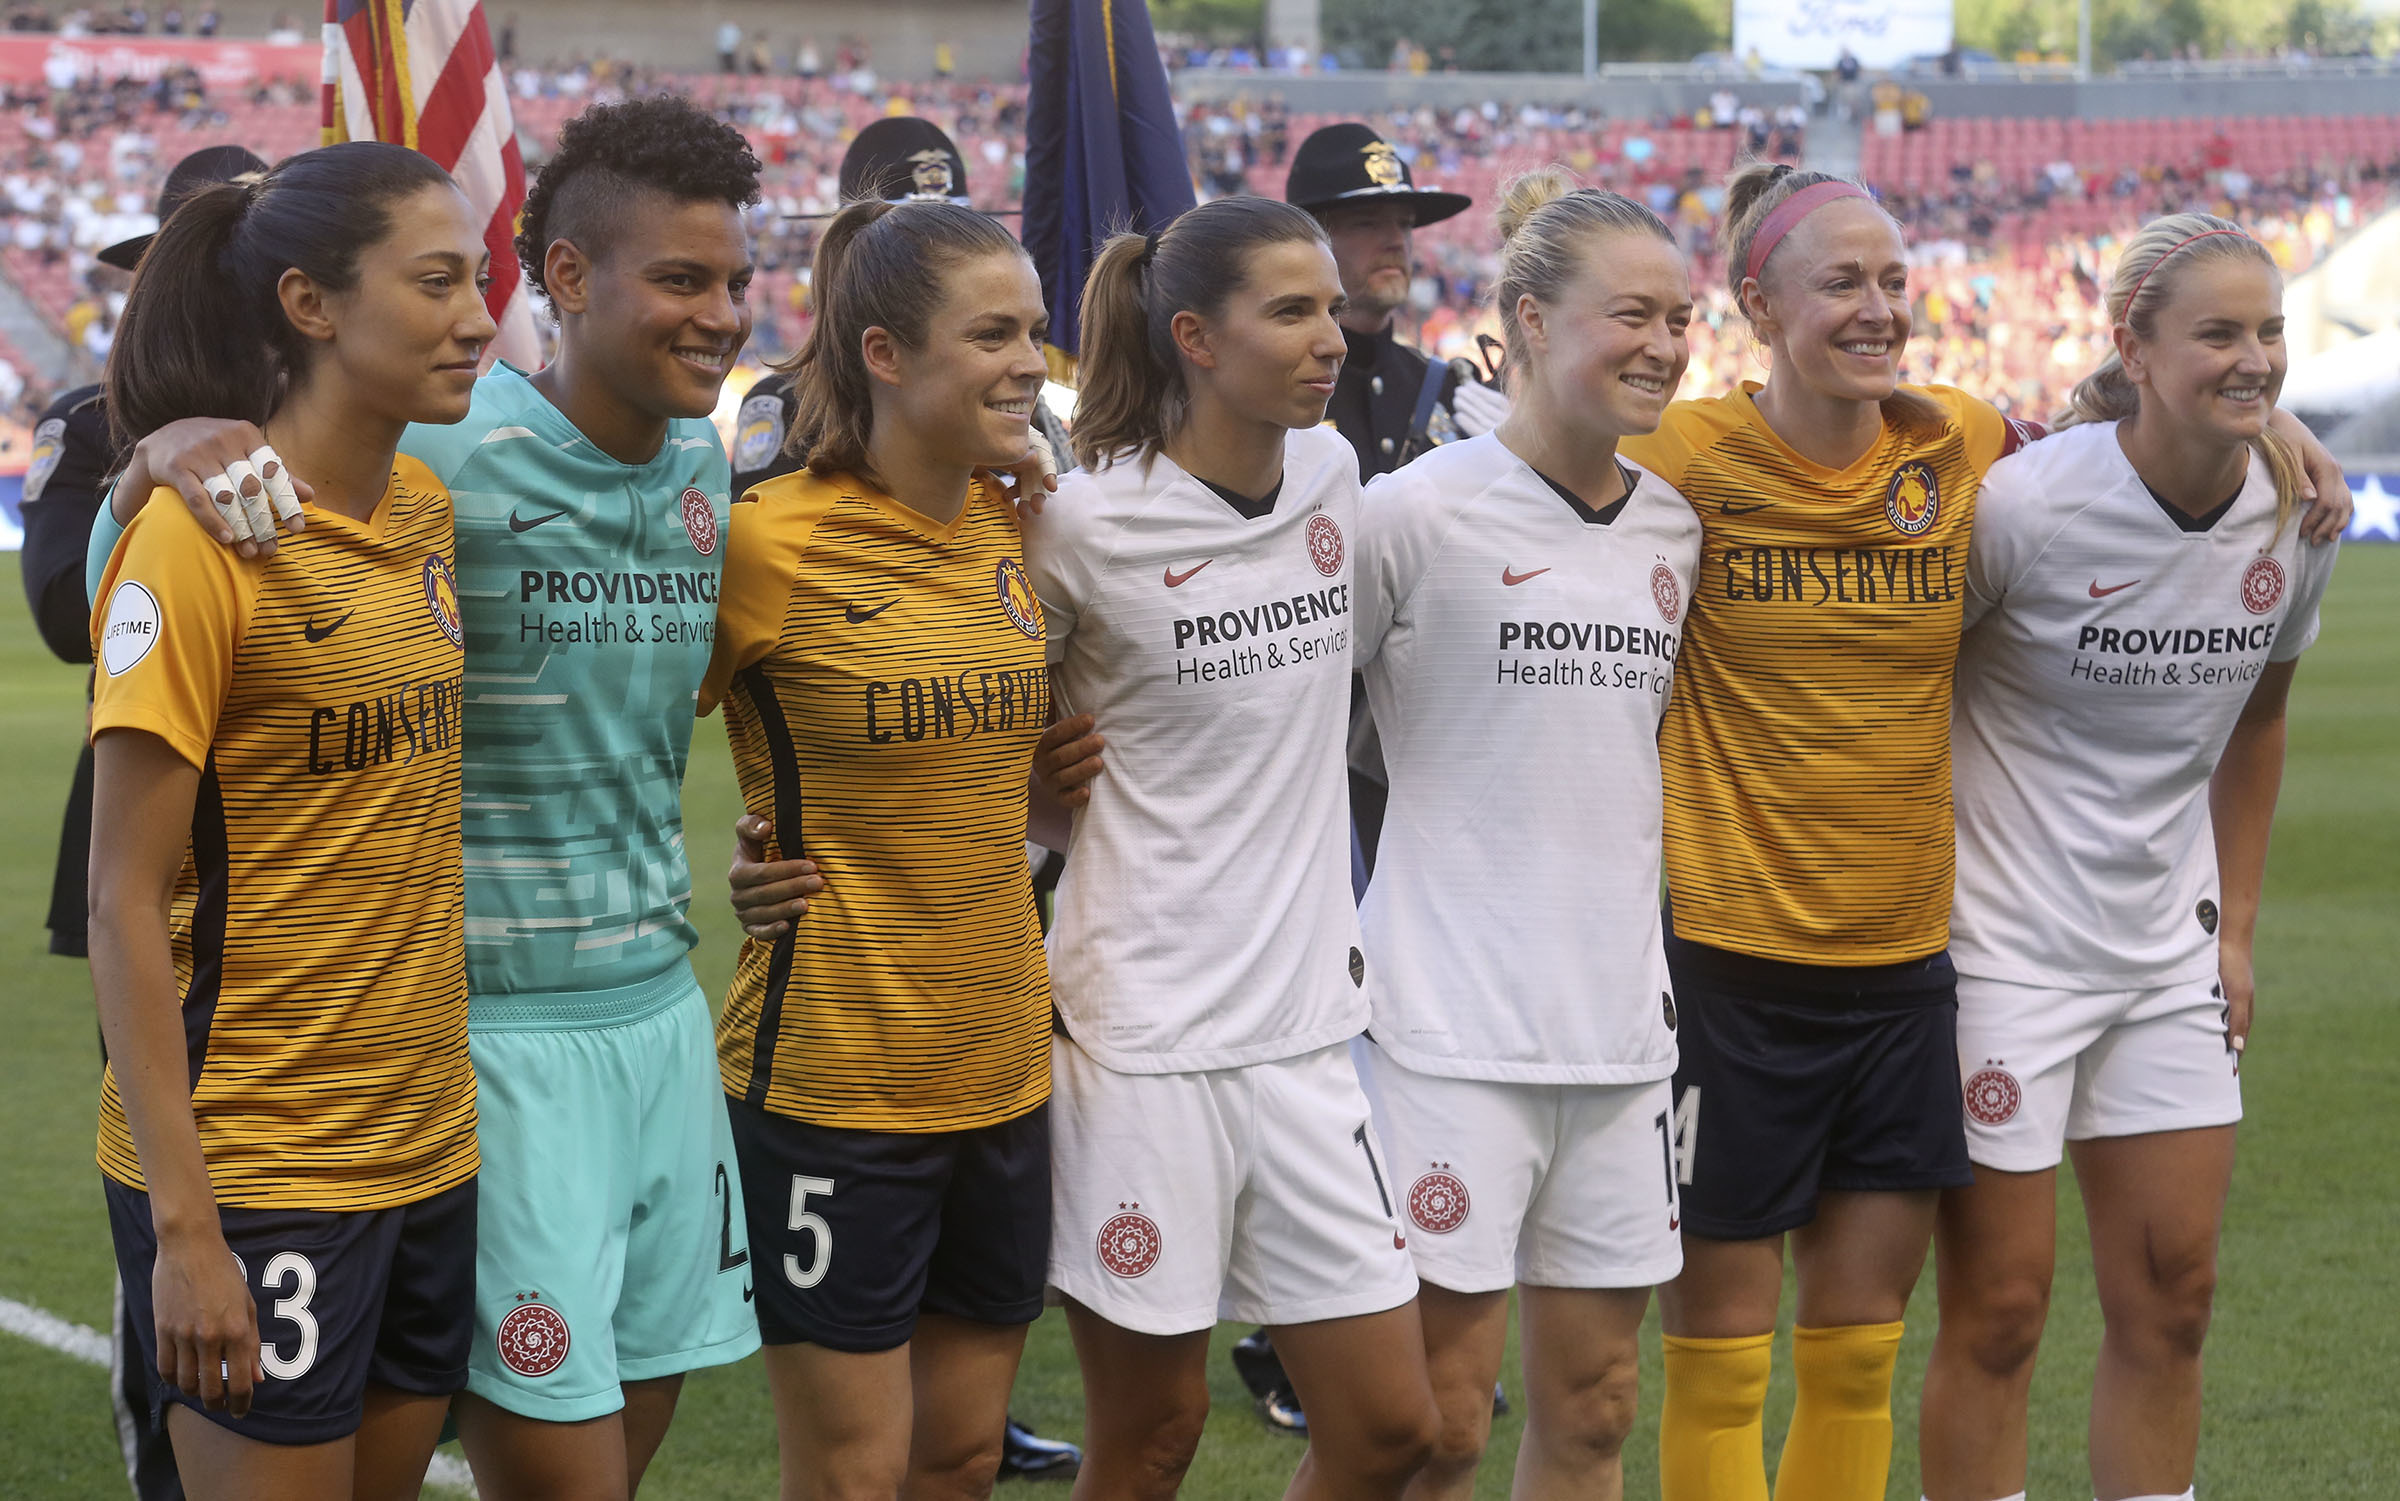 Members of the U.S. Women's National Soccer Team are honored before the Utah Royals FC play the Portland Thorns FC in a soccer game at Rio Tinto Stadium in Sandy on Friday, July 19, 2019. Final score was 2-2.